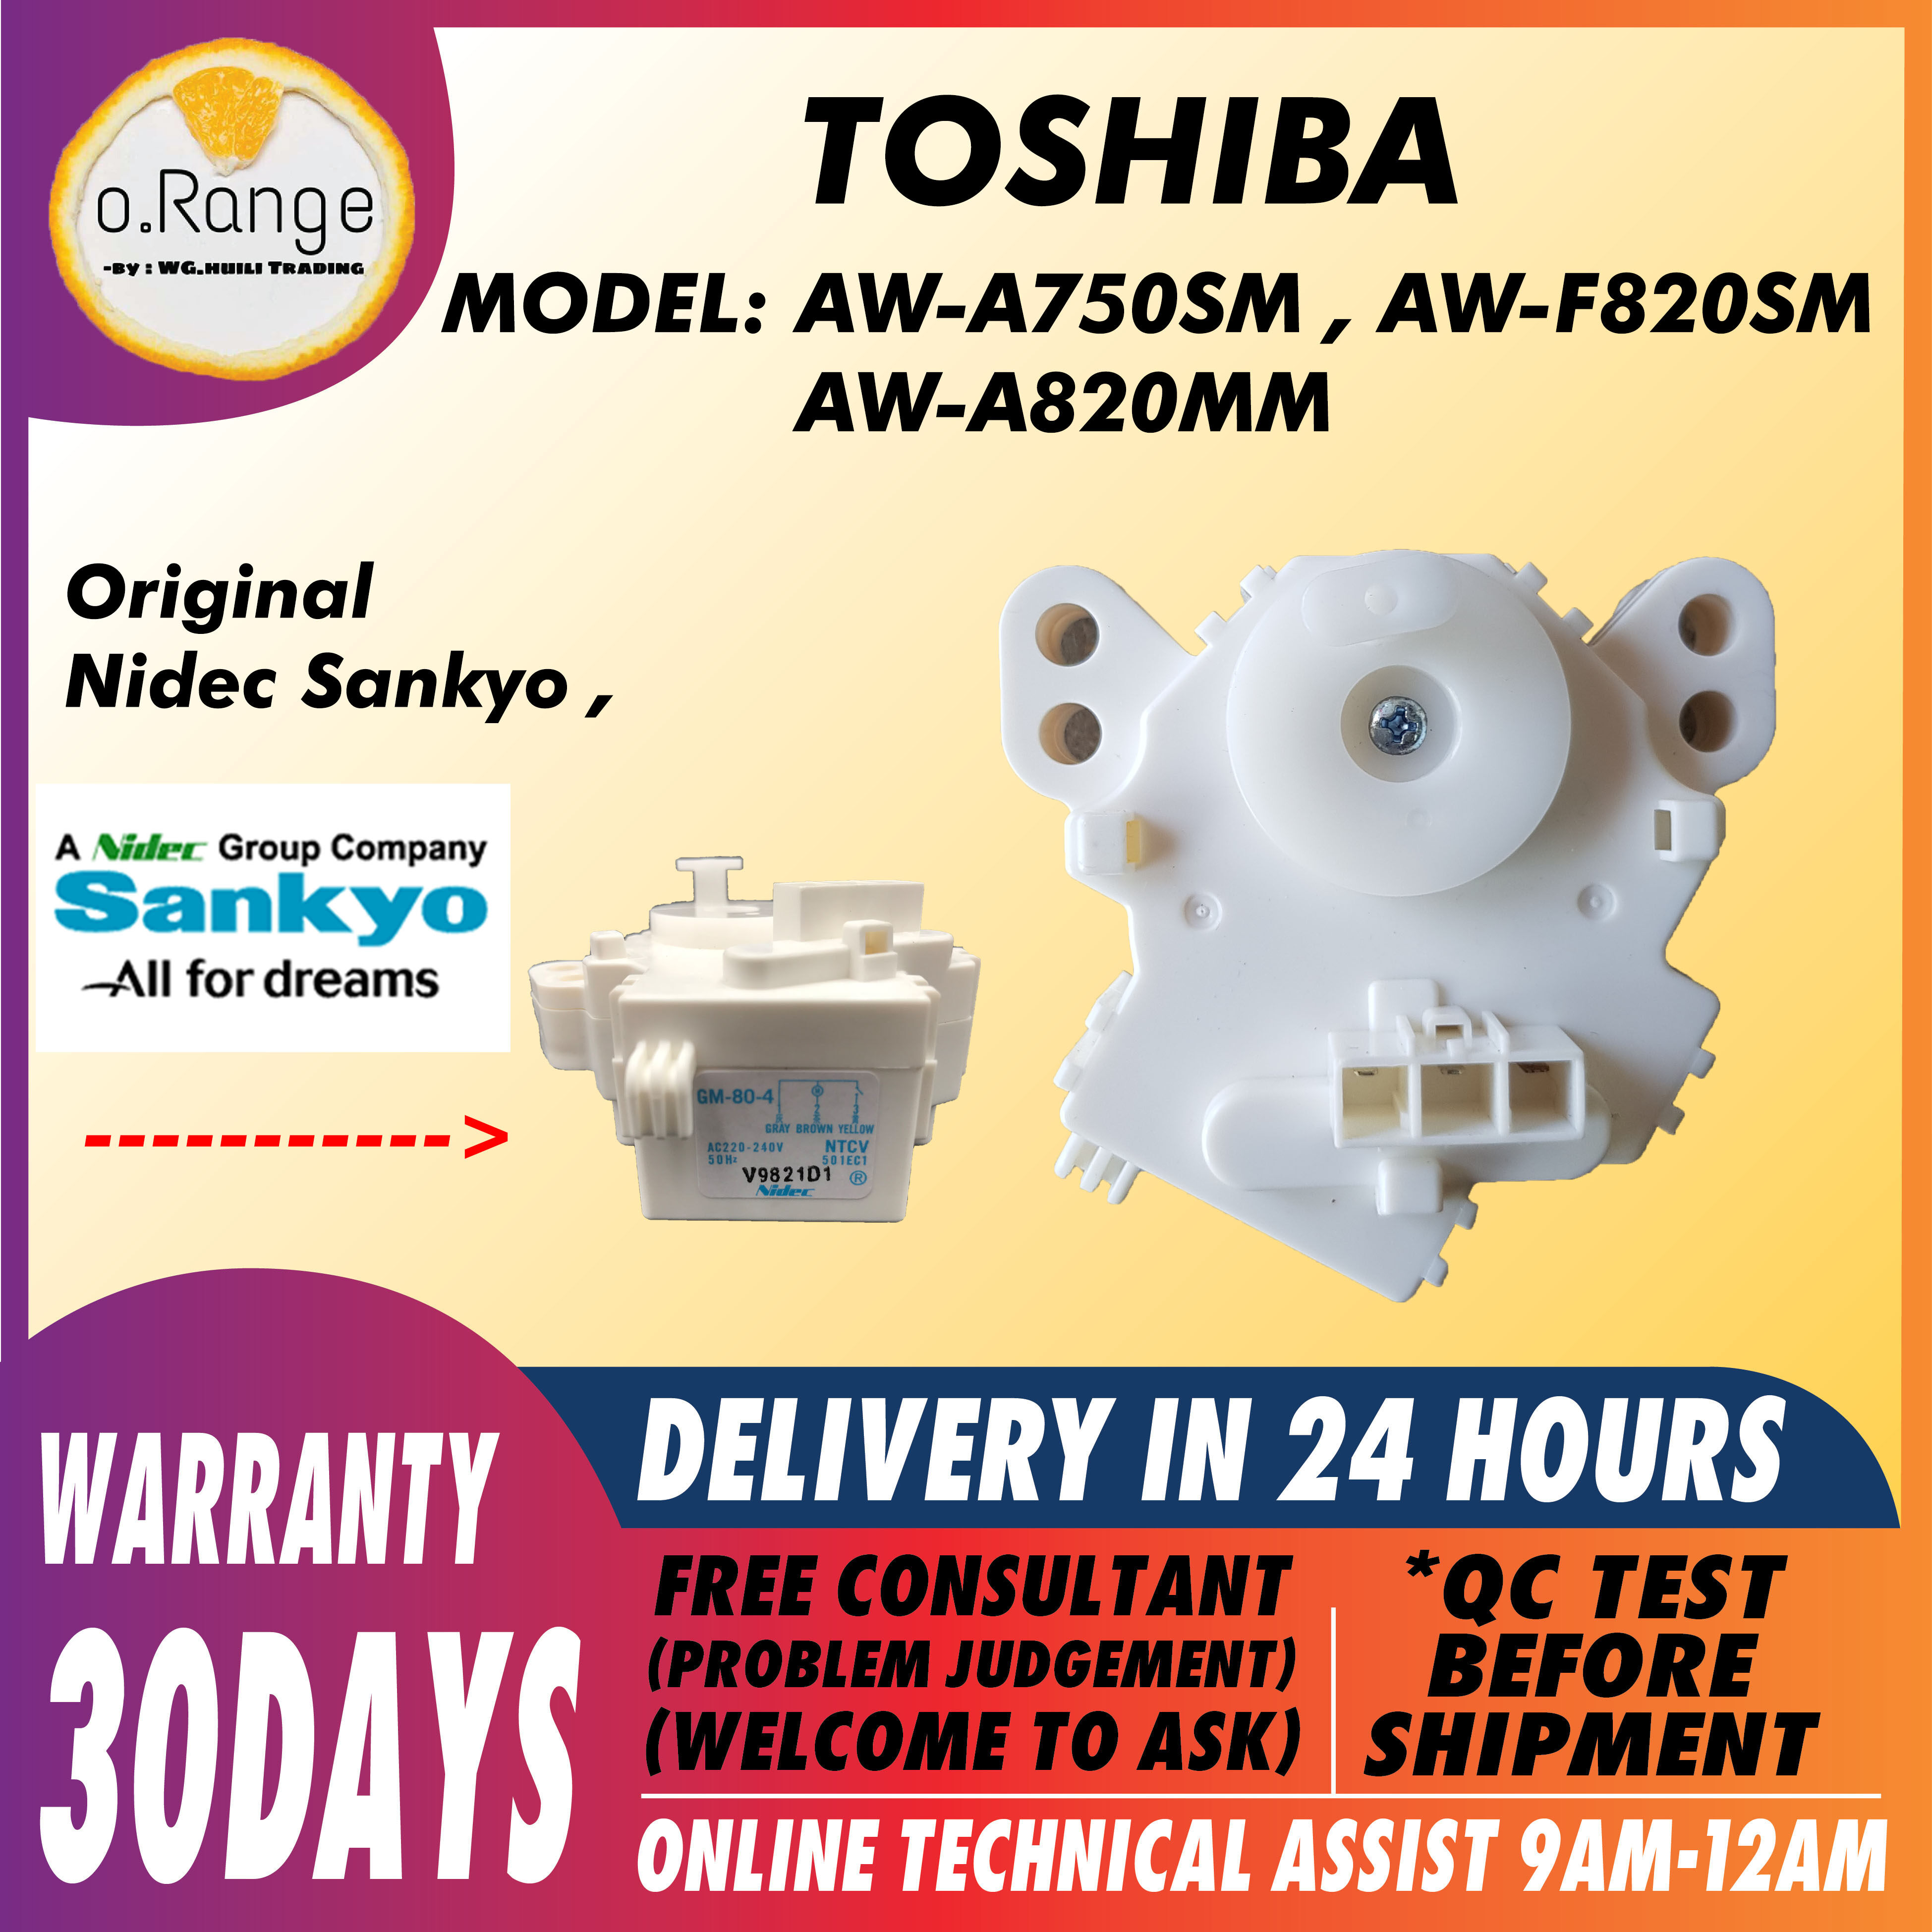 (ORIGINAL NIDEC SANKYO ) AW-A750SM / AW-F820SM / AW-A820MM Toshiba washing machine drain motor ( READY STOCK ) Malaysia